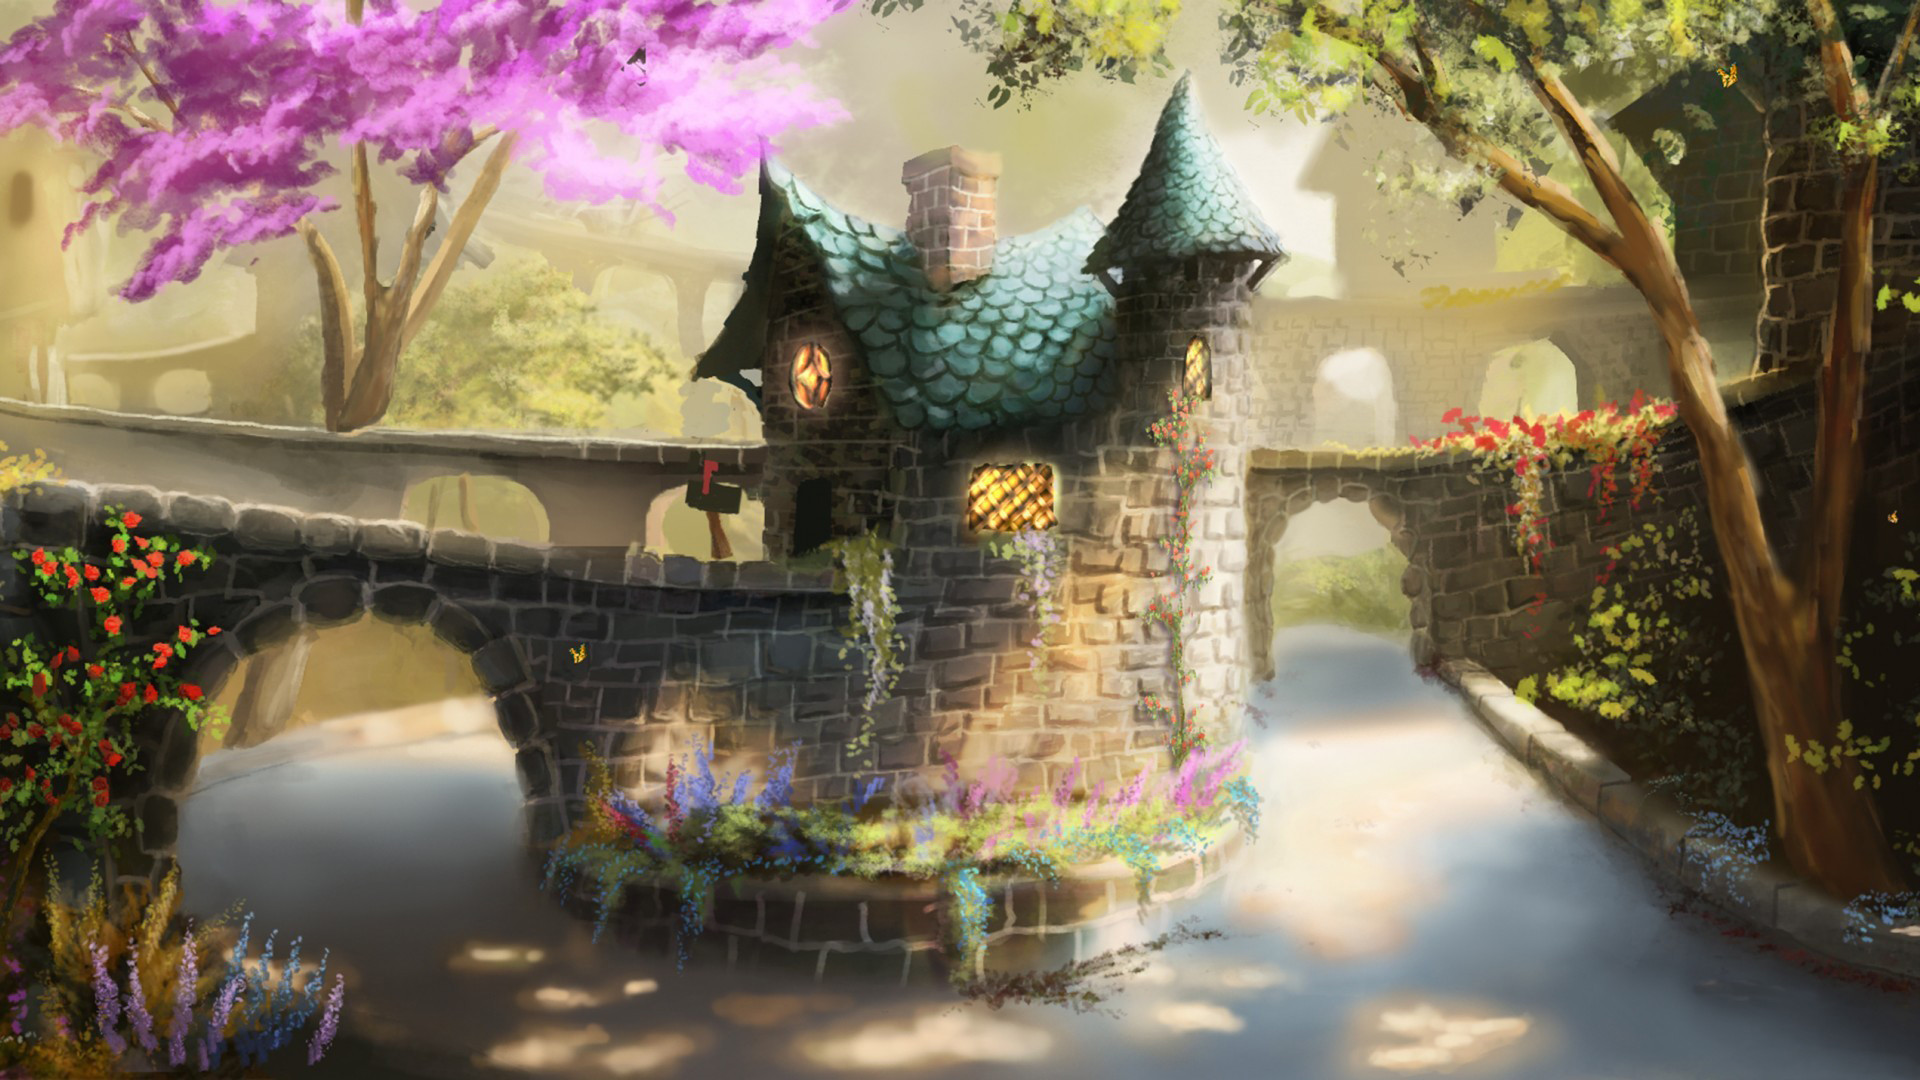 1920x1080 Art painting painting bridge house tree flowers river .